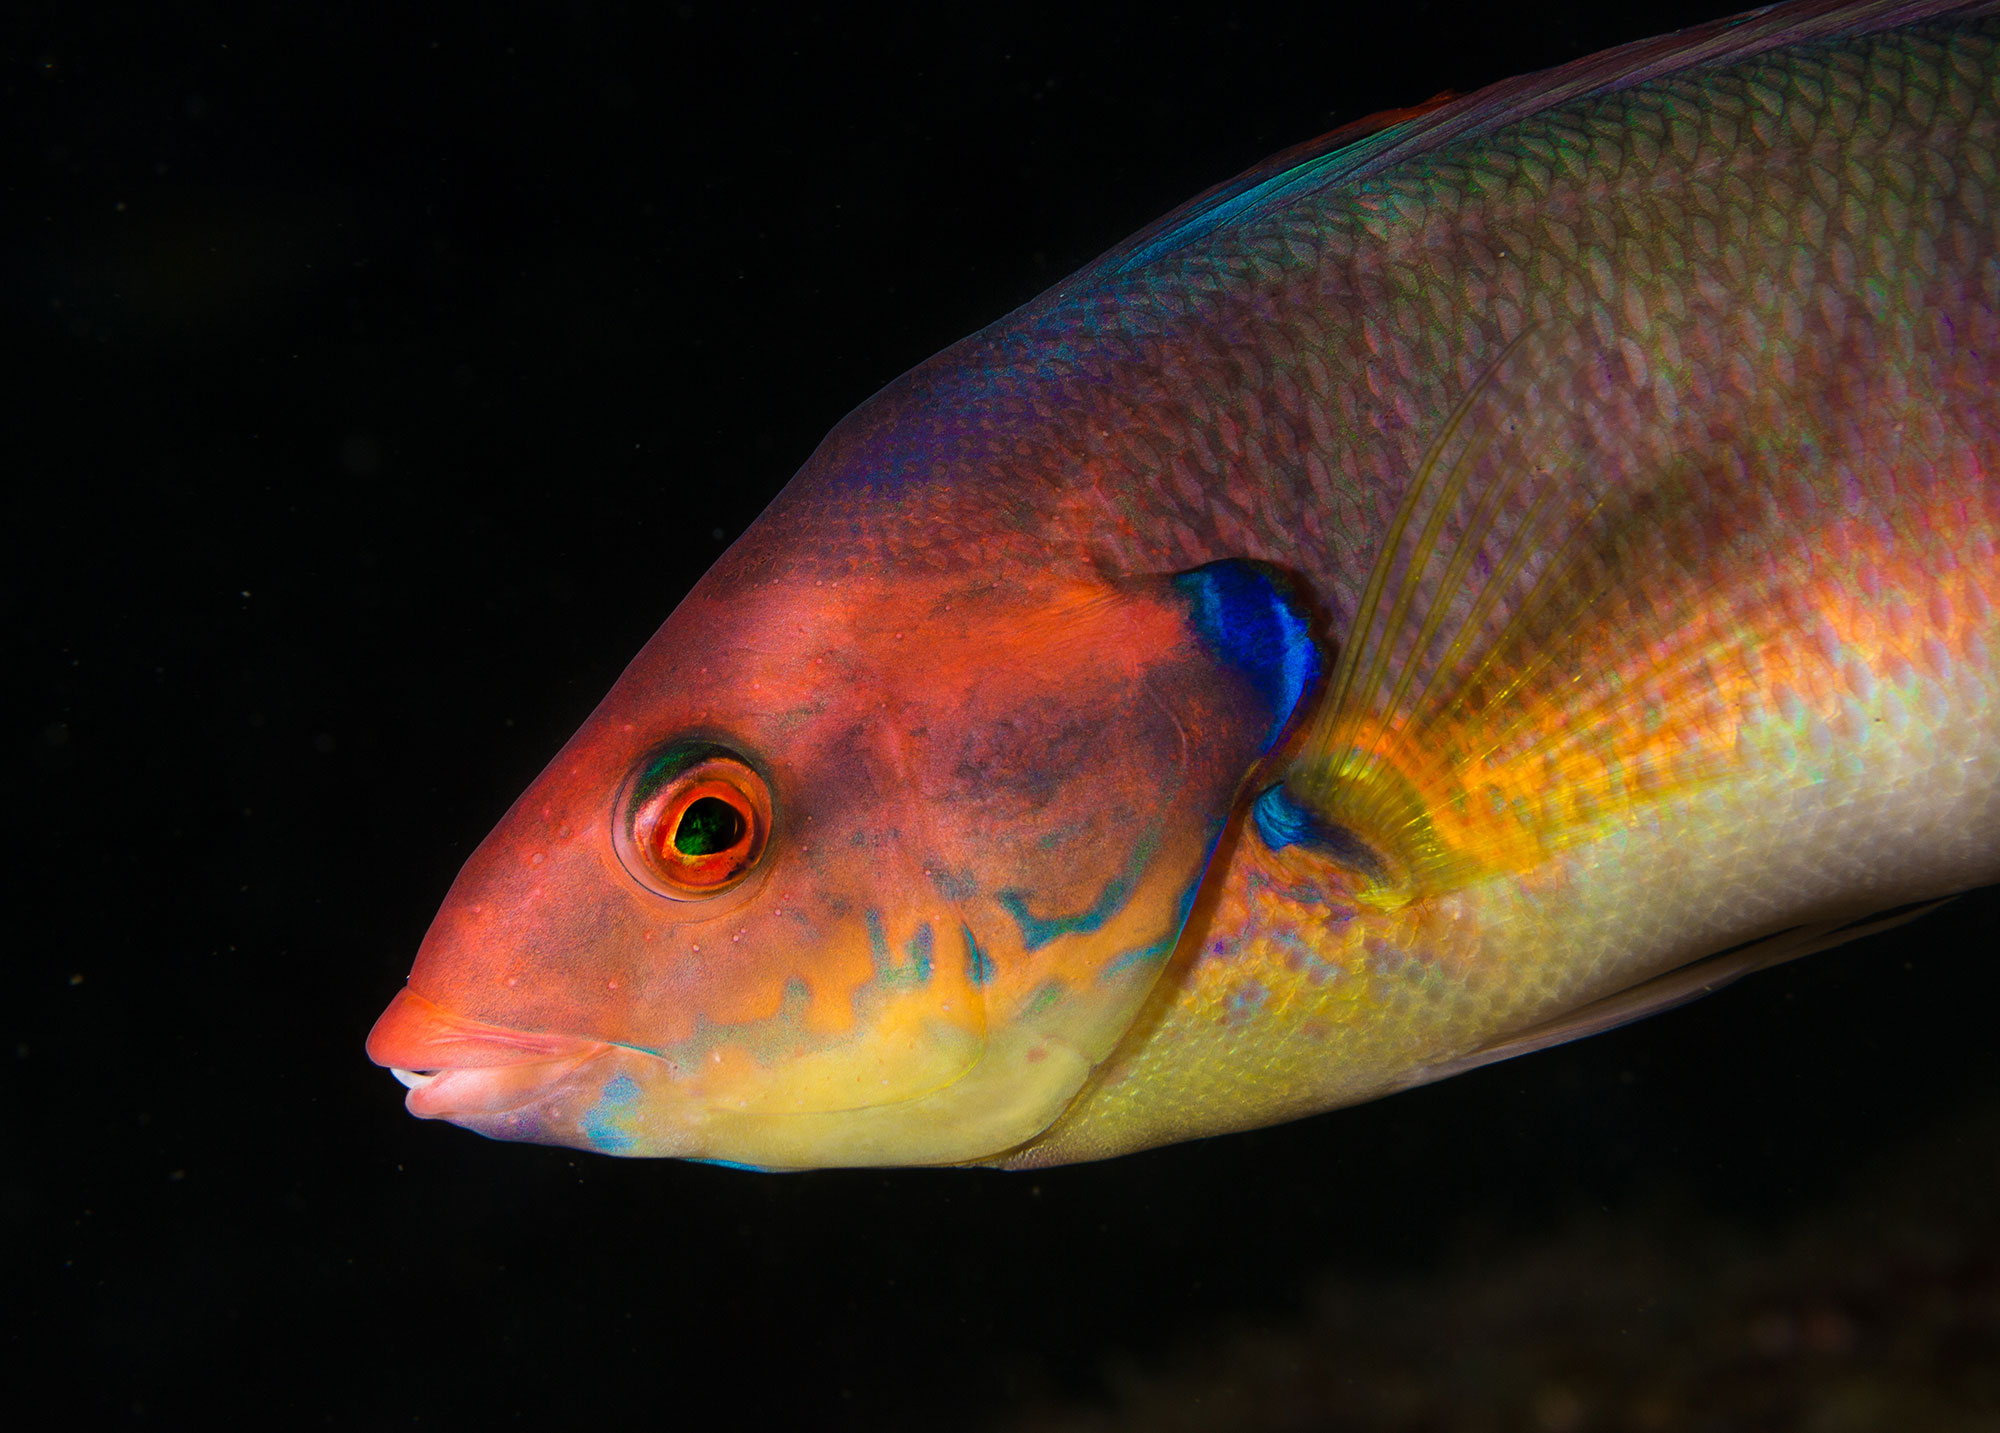 A Colourful Wrasse Profile Spotted while Diving at Tufo on São Miguel island